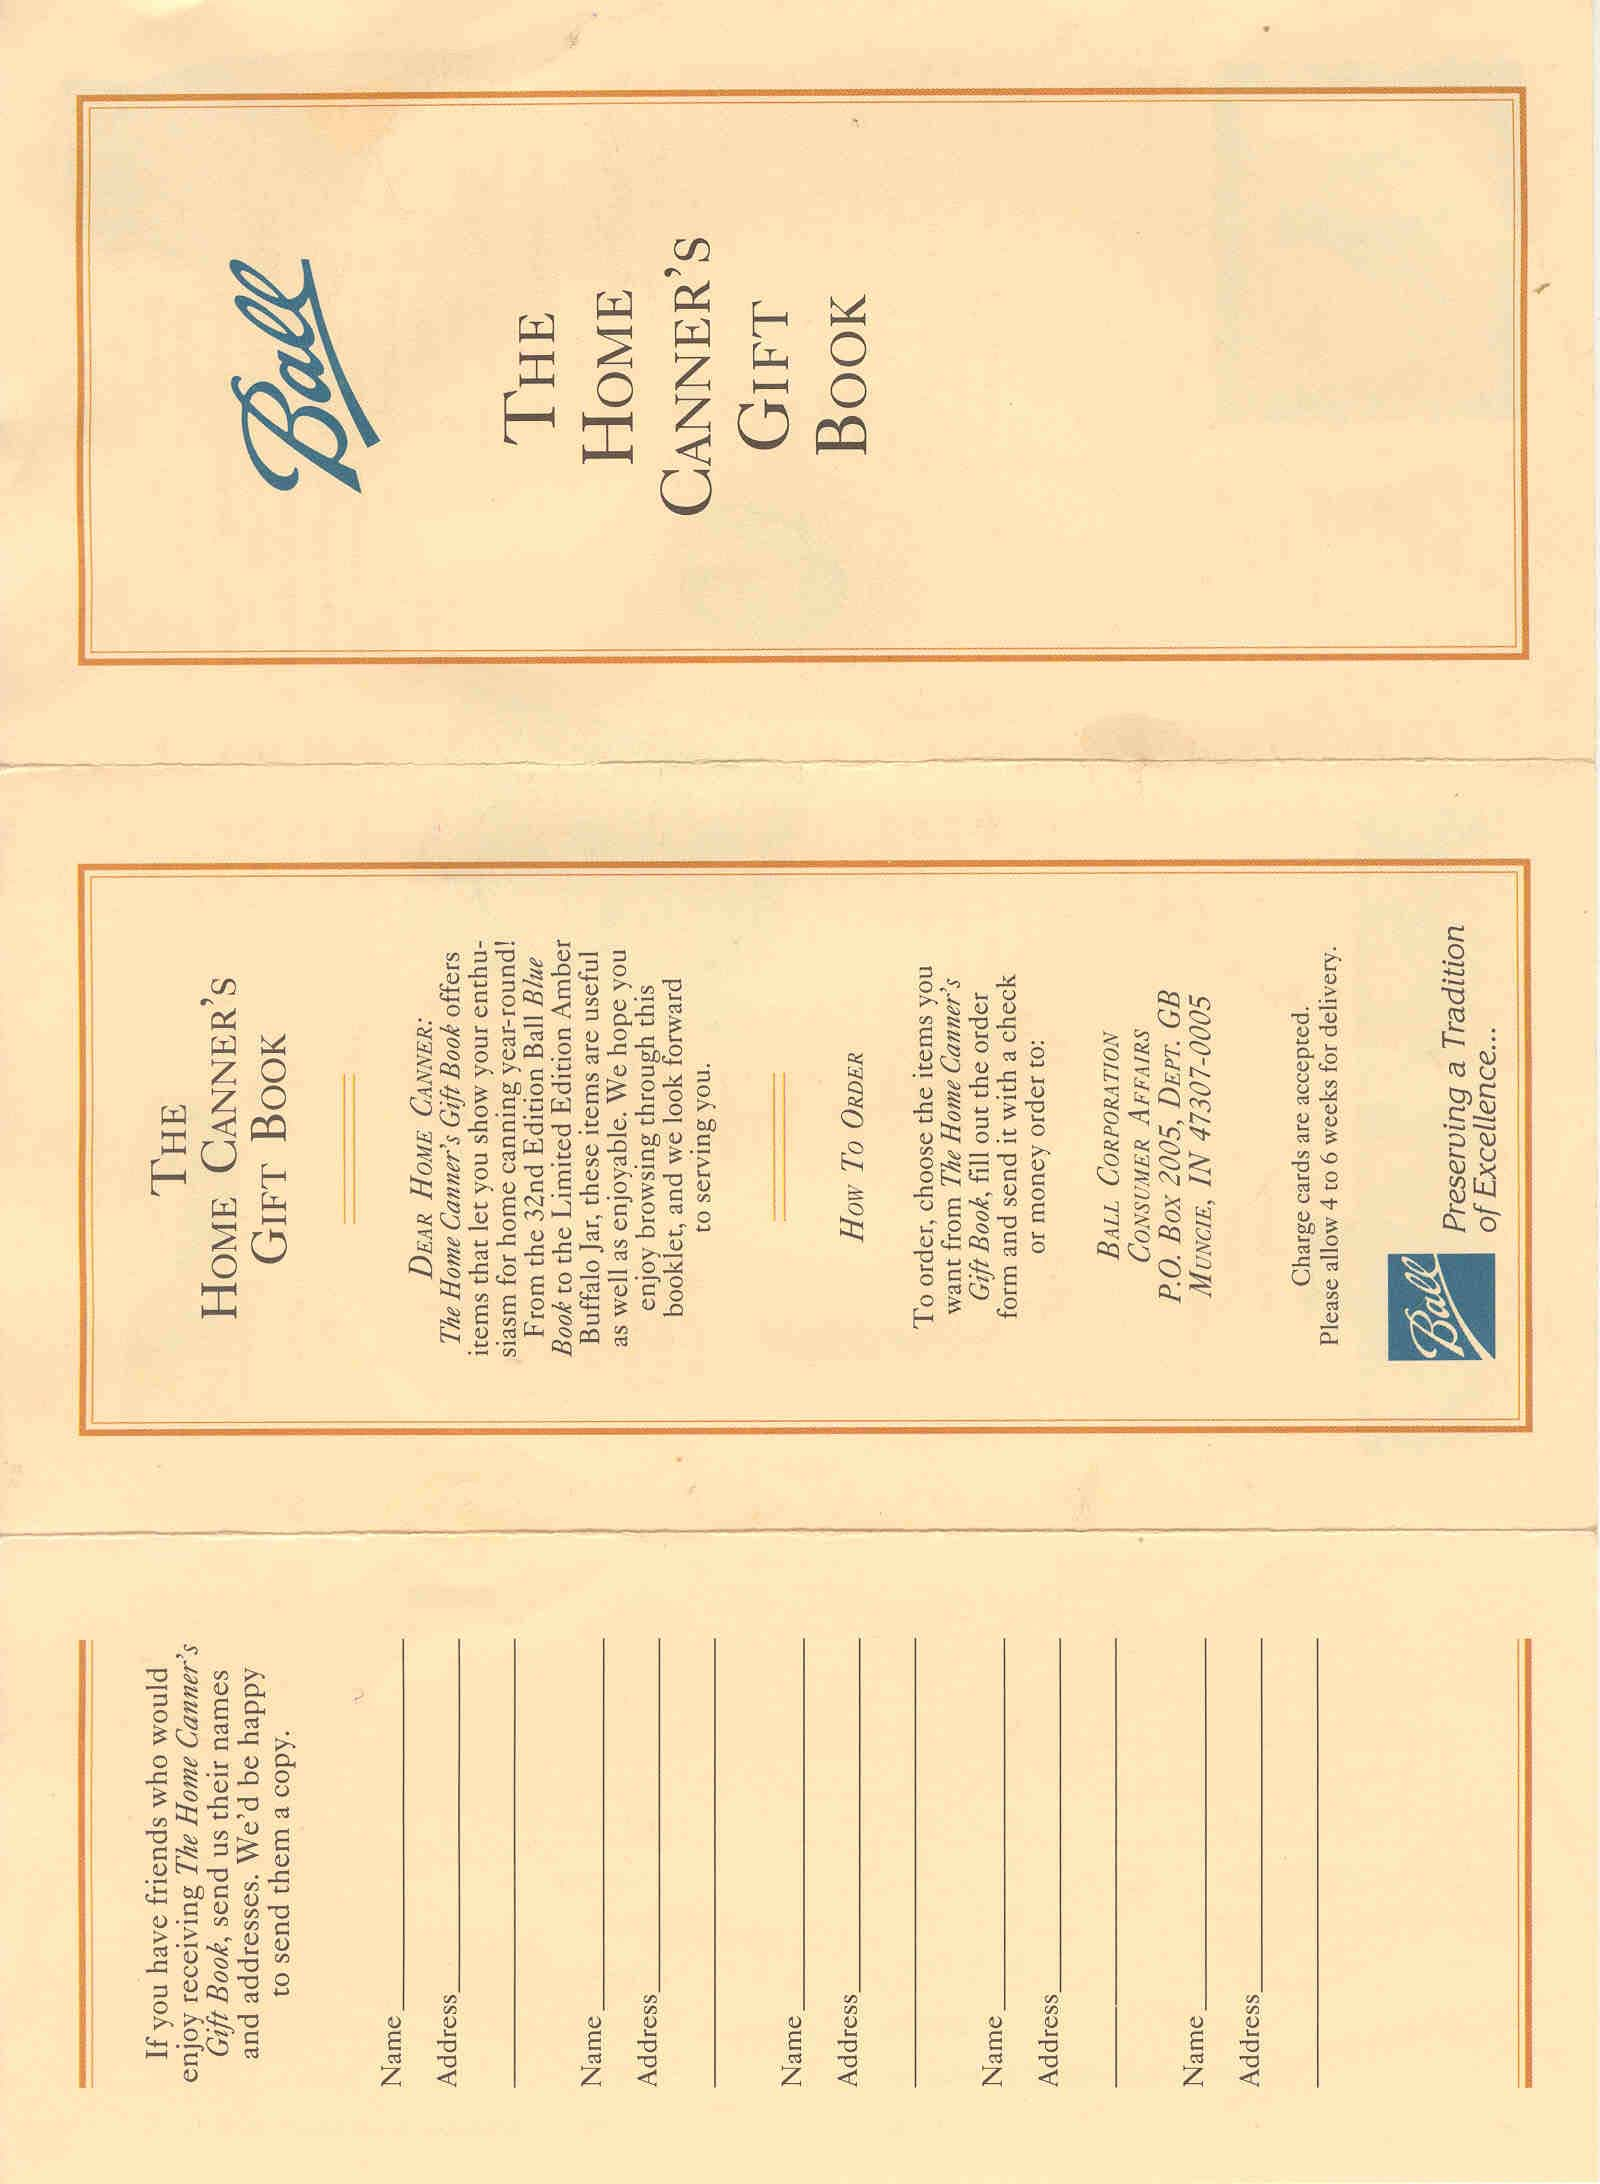 Cashier's Check Ball Canning Literature How To Fill Out